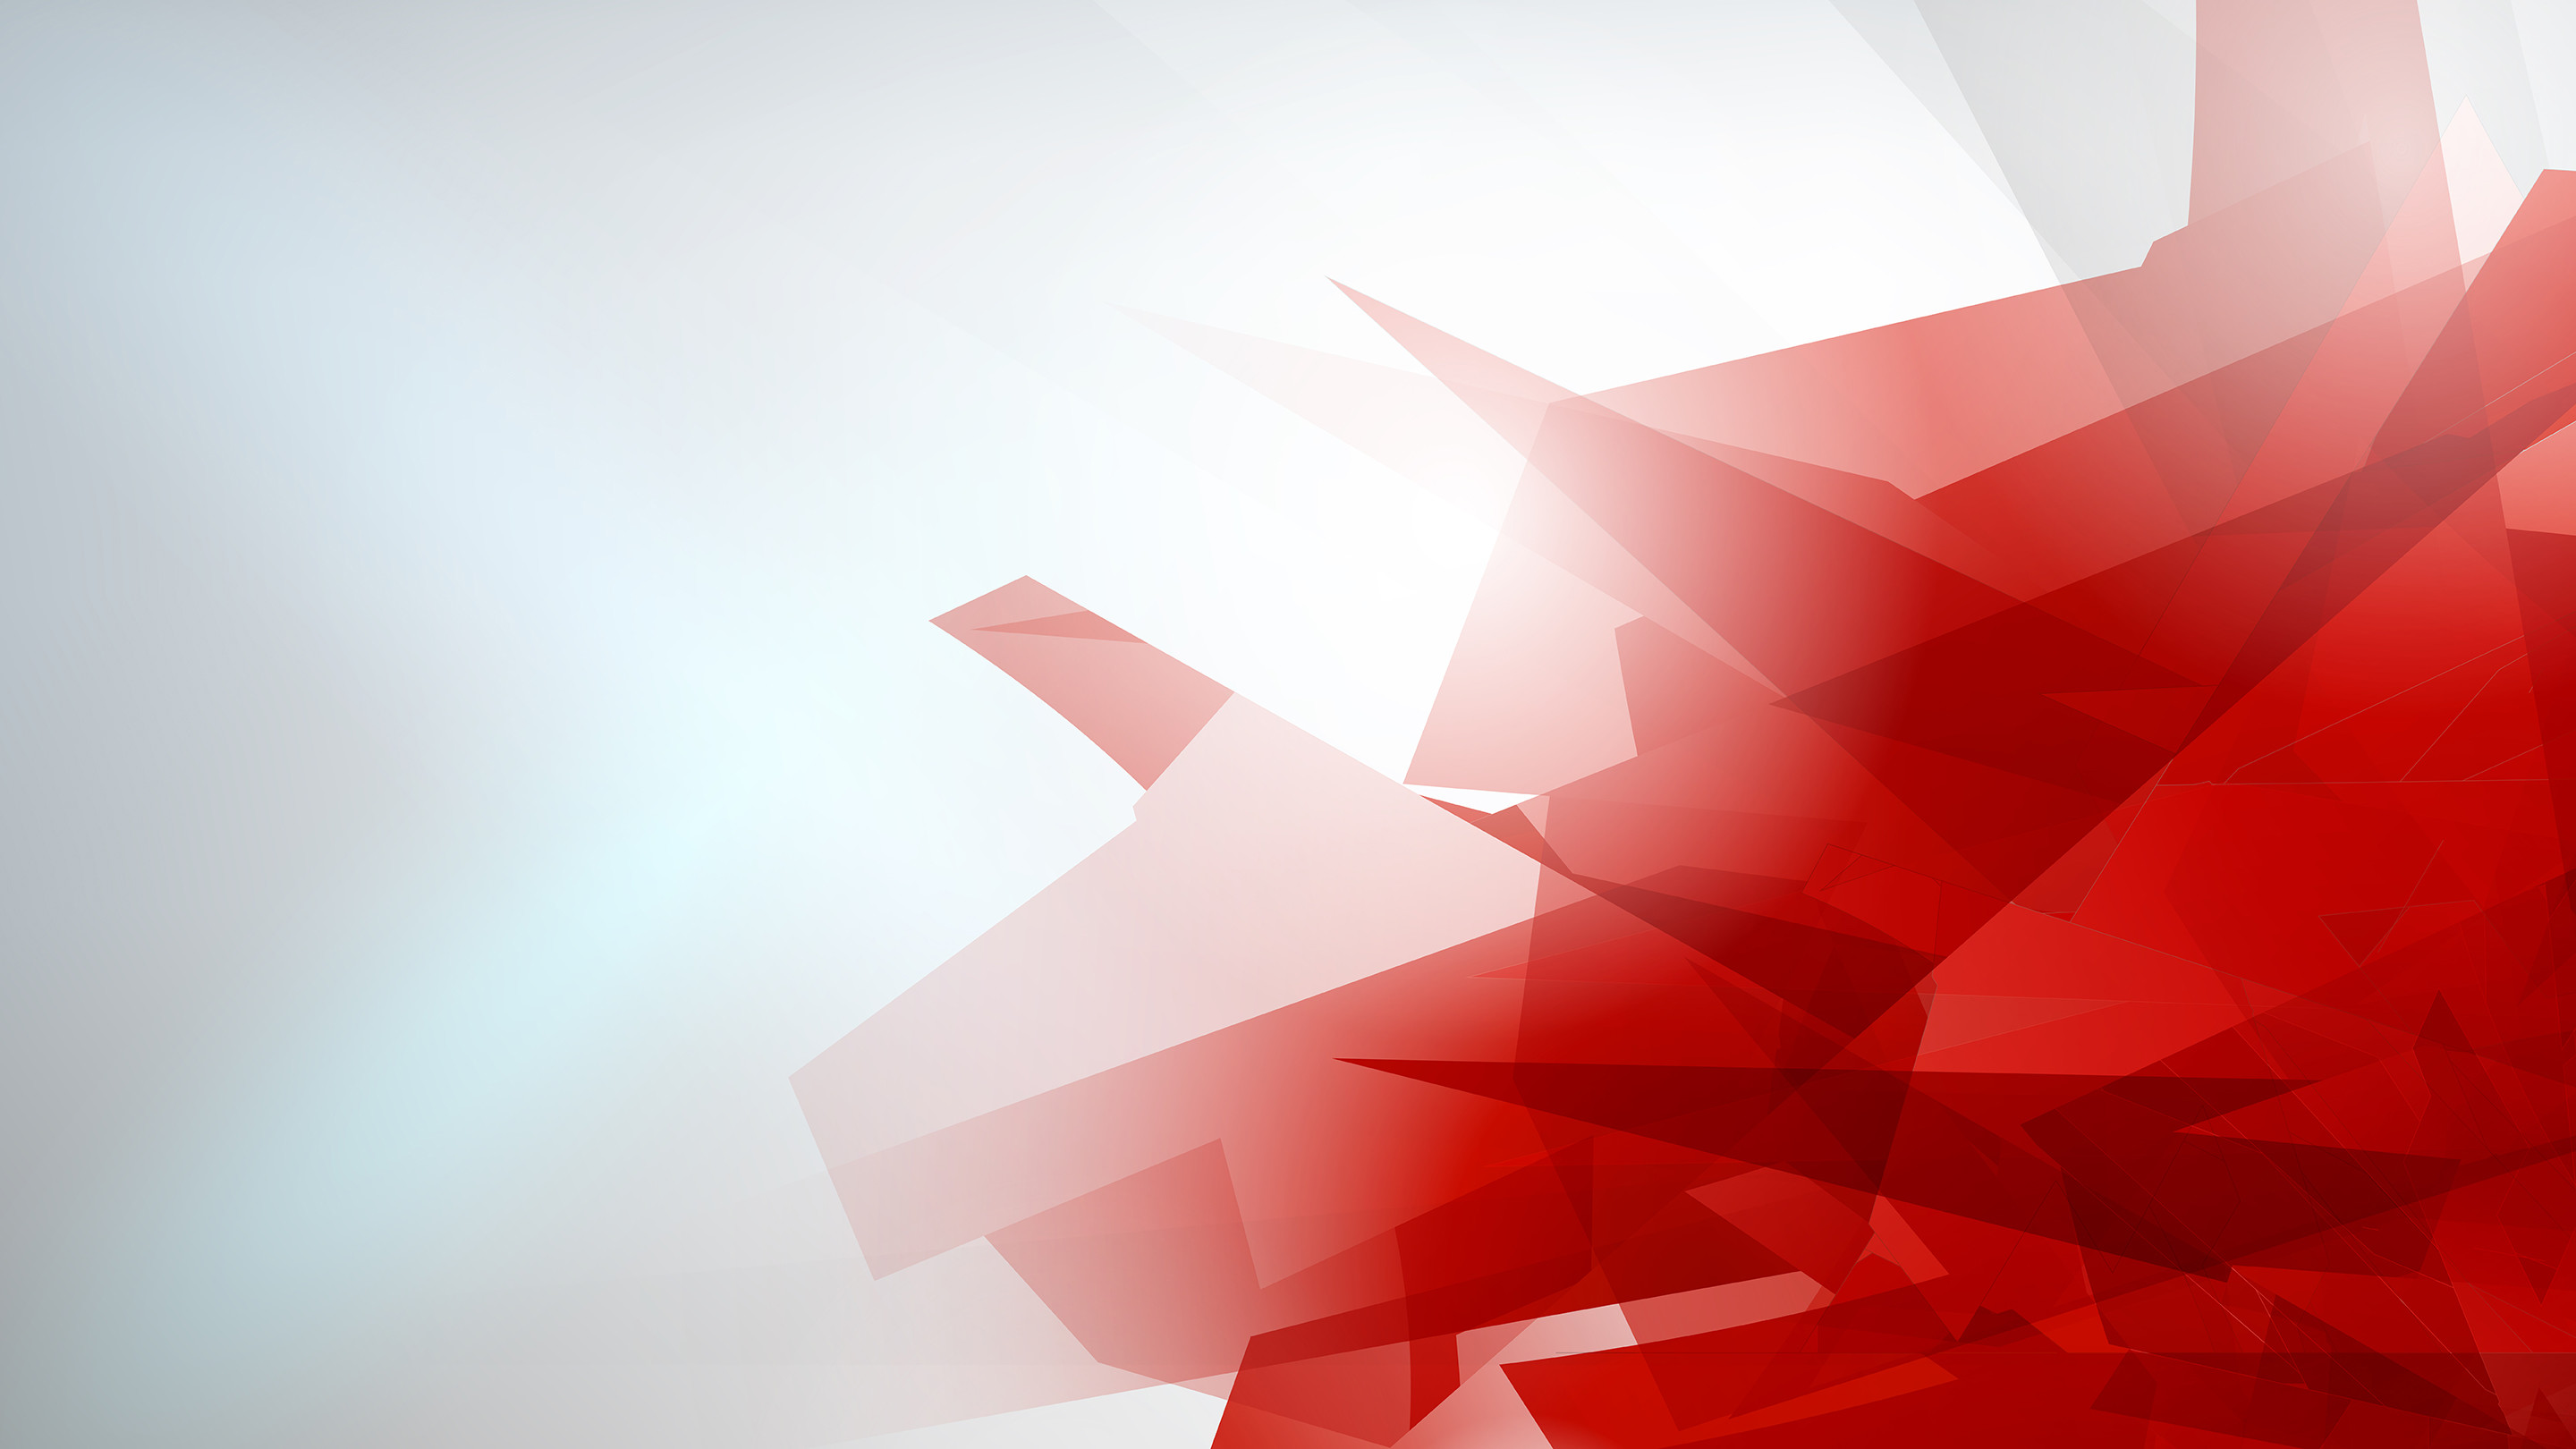 Lenovo wallpapers that come with Windows 8.1